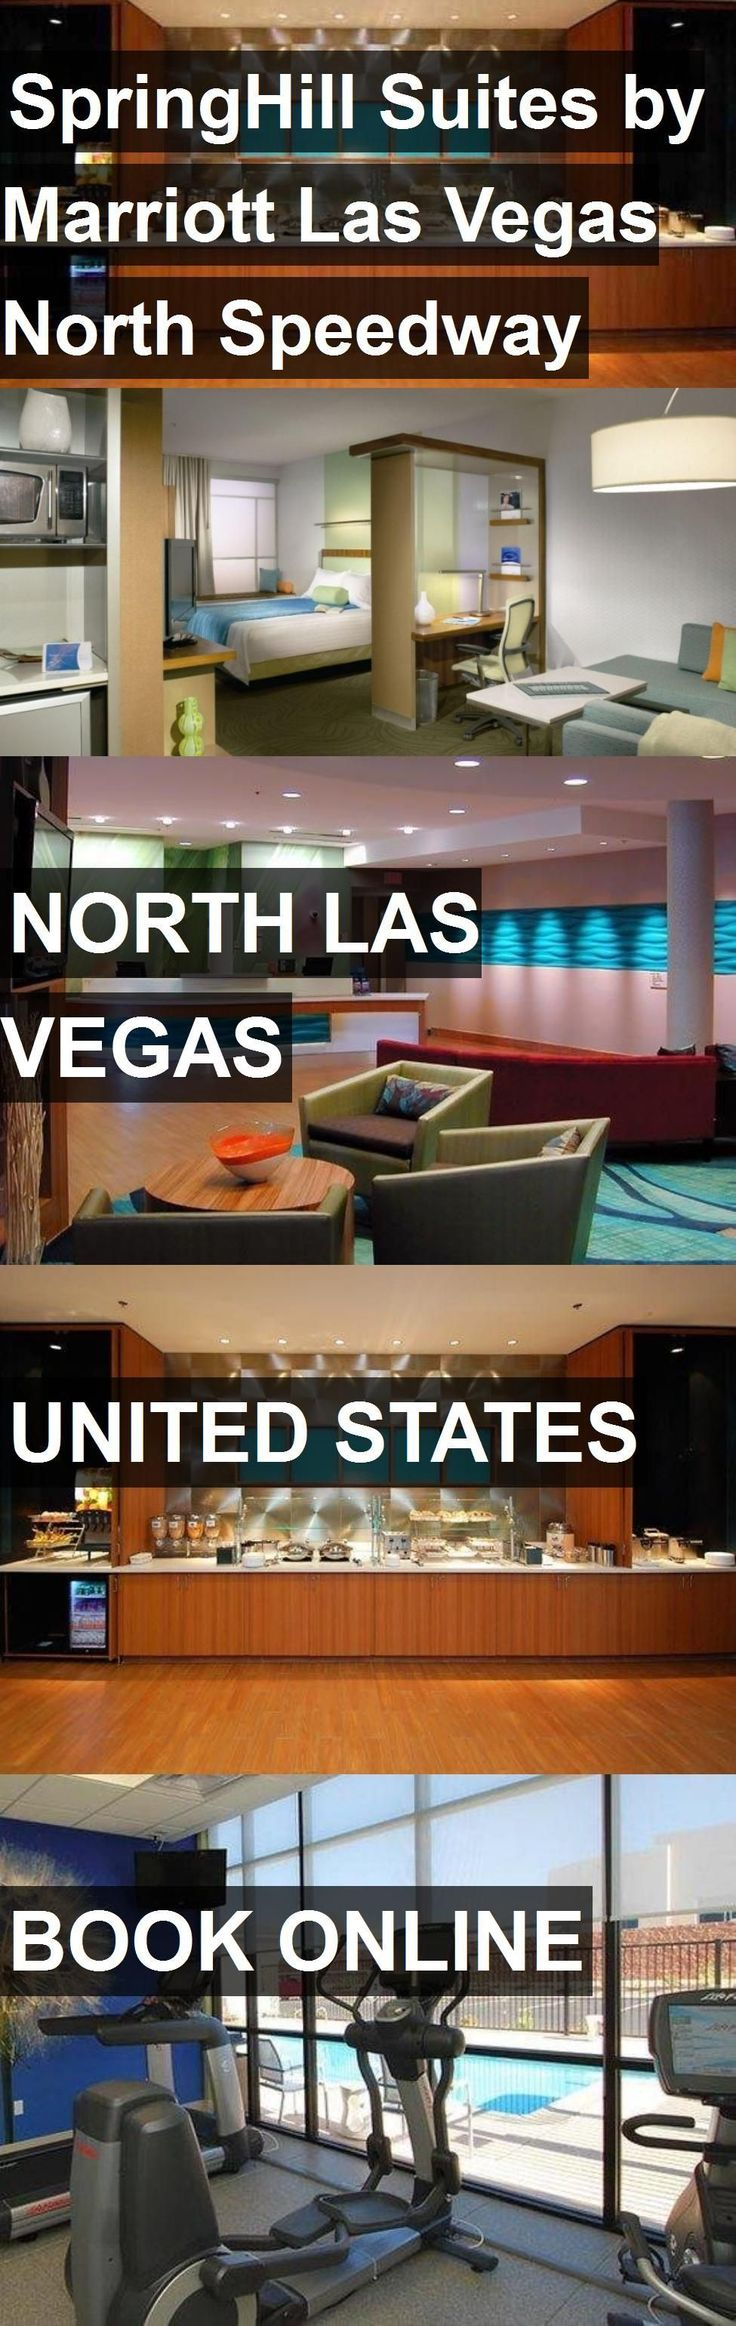 Hotel SpringHill Suites by Marriott Las Vegas North Speedway in North Las Vegas, United States. For more information, photos, reviews and best prices please follow the link. #UnitedStates #NorthLasVegas #travel #vacation #hotel